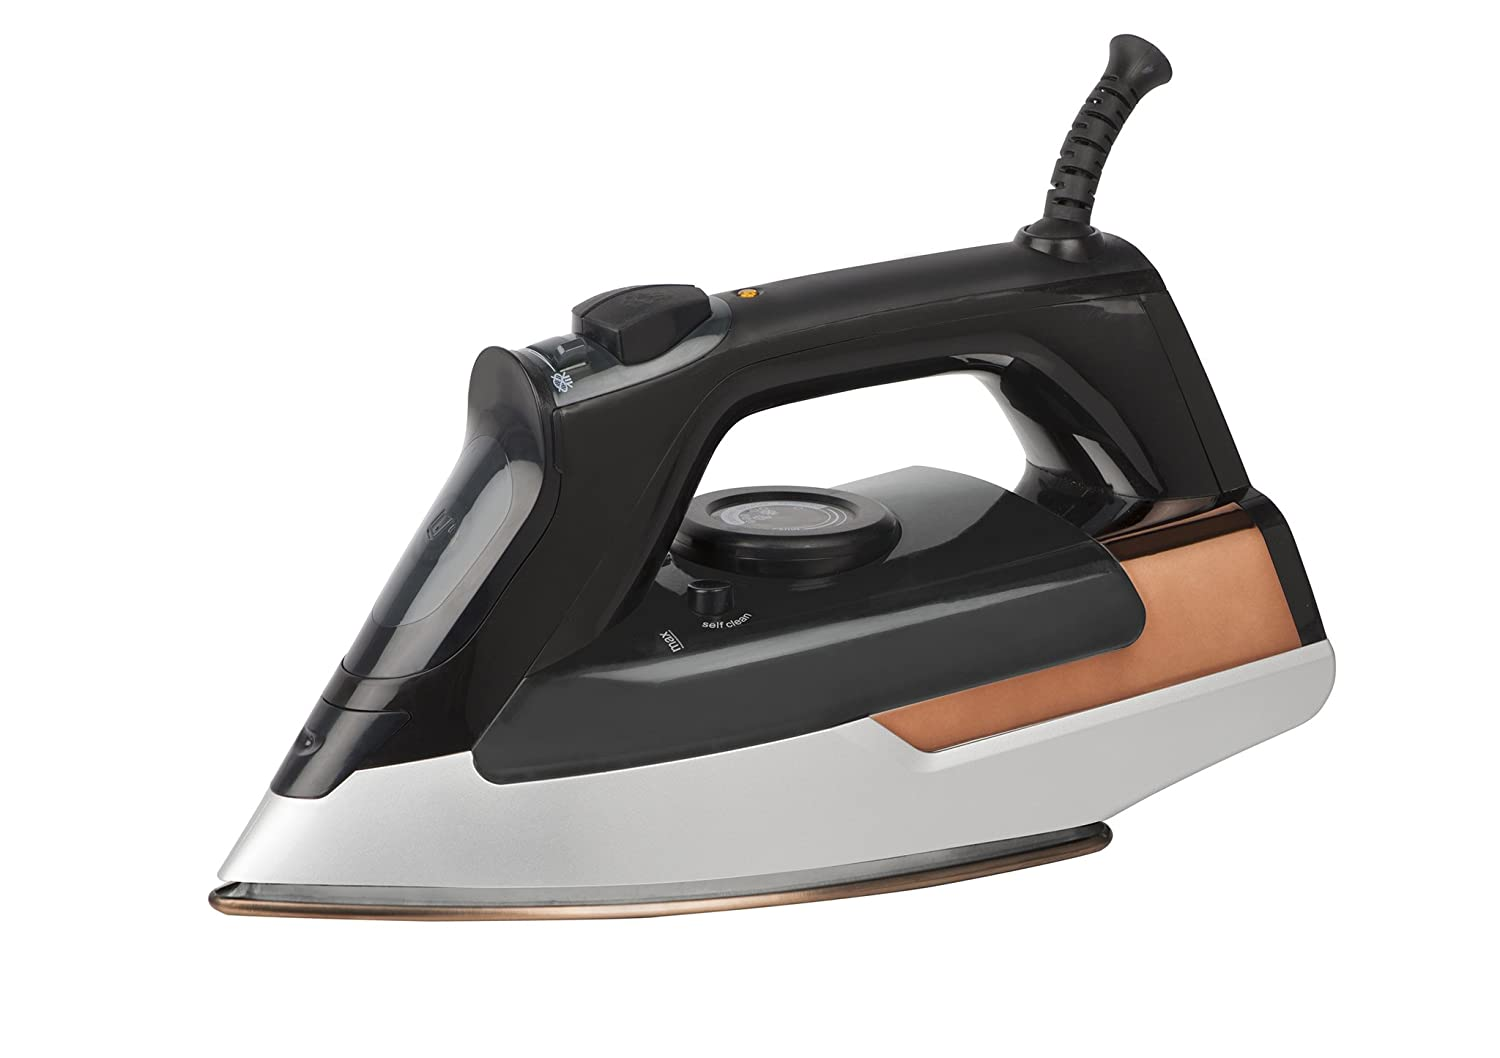 Conair 1875-Watt Extreme Steam Pro Steam Iron with Nano Titanium Soleplate for Smooth Glide; Anti-Drip, Anti-Calc; Auto Shut Off